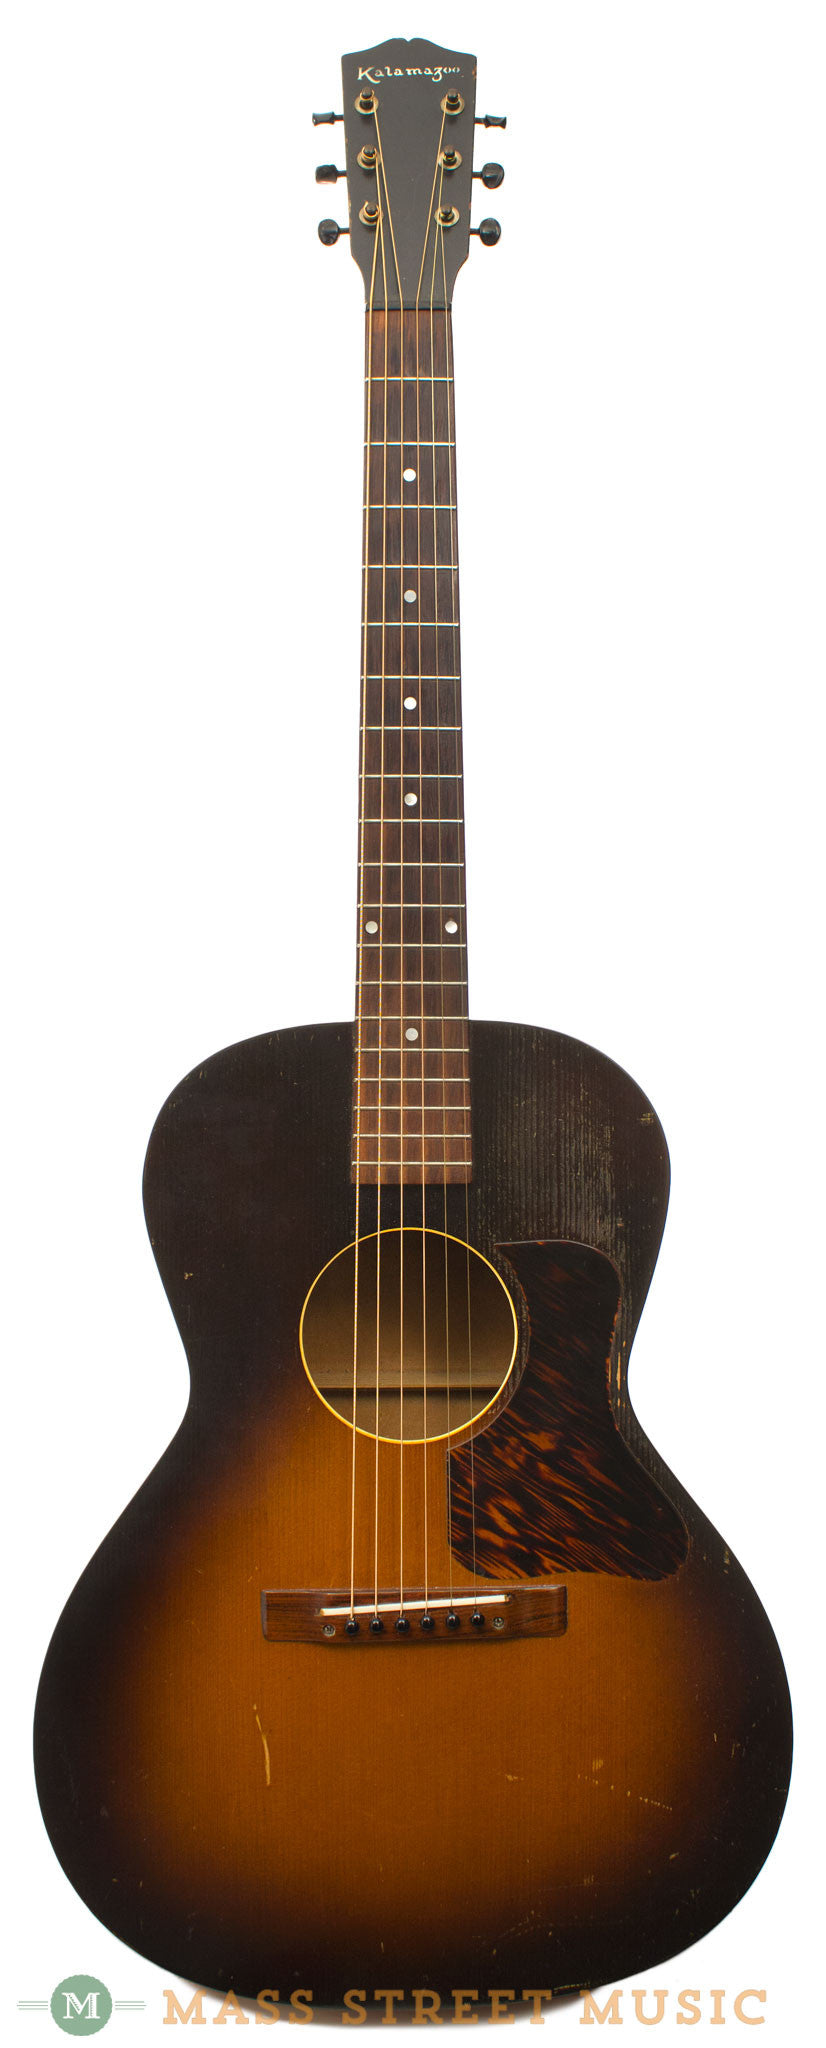 Kalamazoo Guitar Center : kalamazoo 1941 kg 12 sunburst acoustic guitar with original case mass street music store ~ Hamham.info Haus und Dekorationen